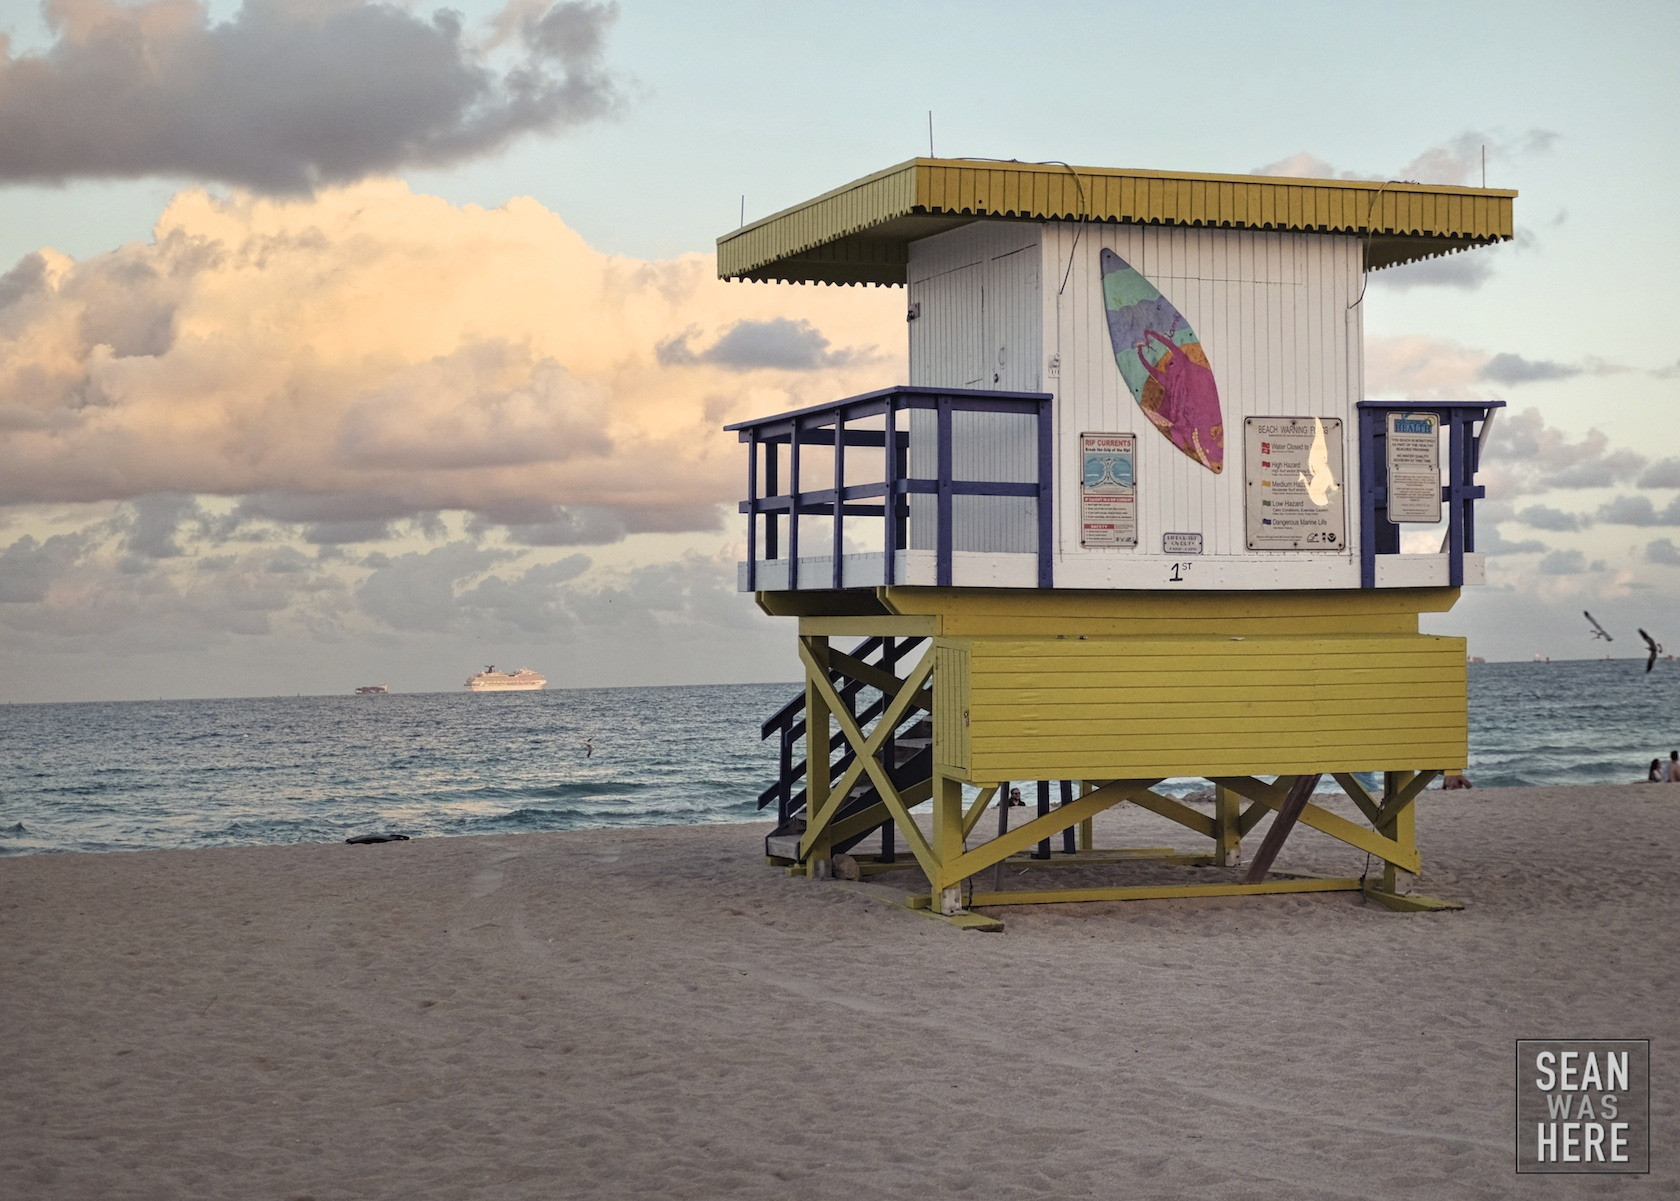 Miami Beach 1st Street Lifeguard Stand